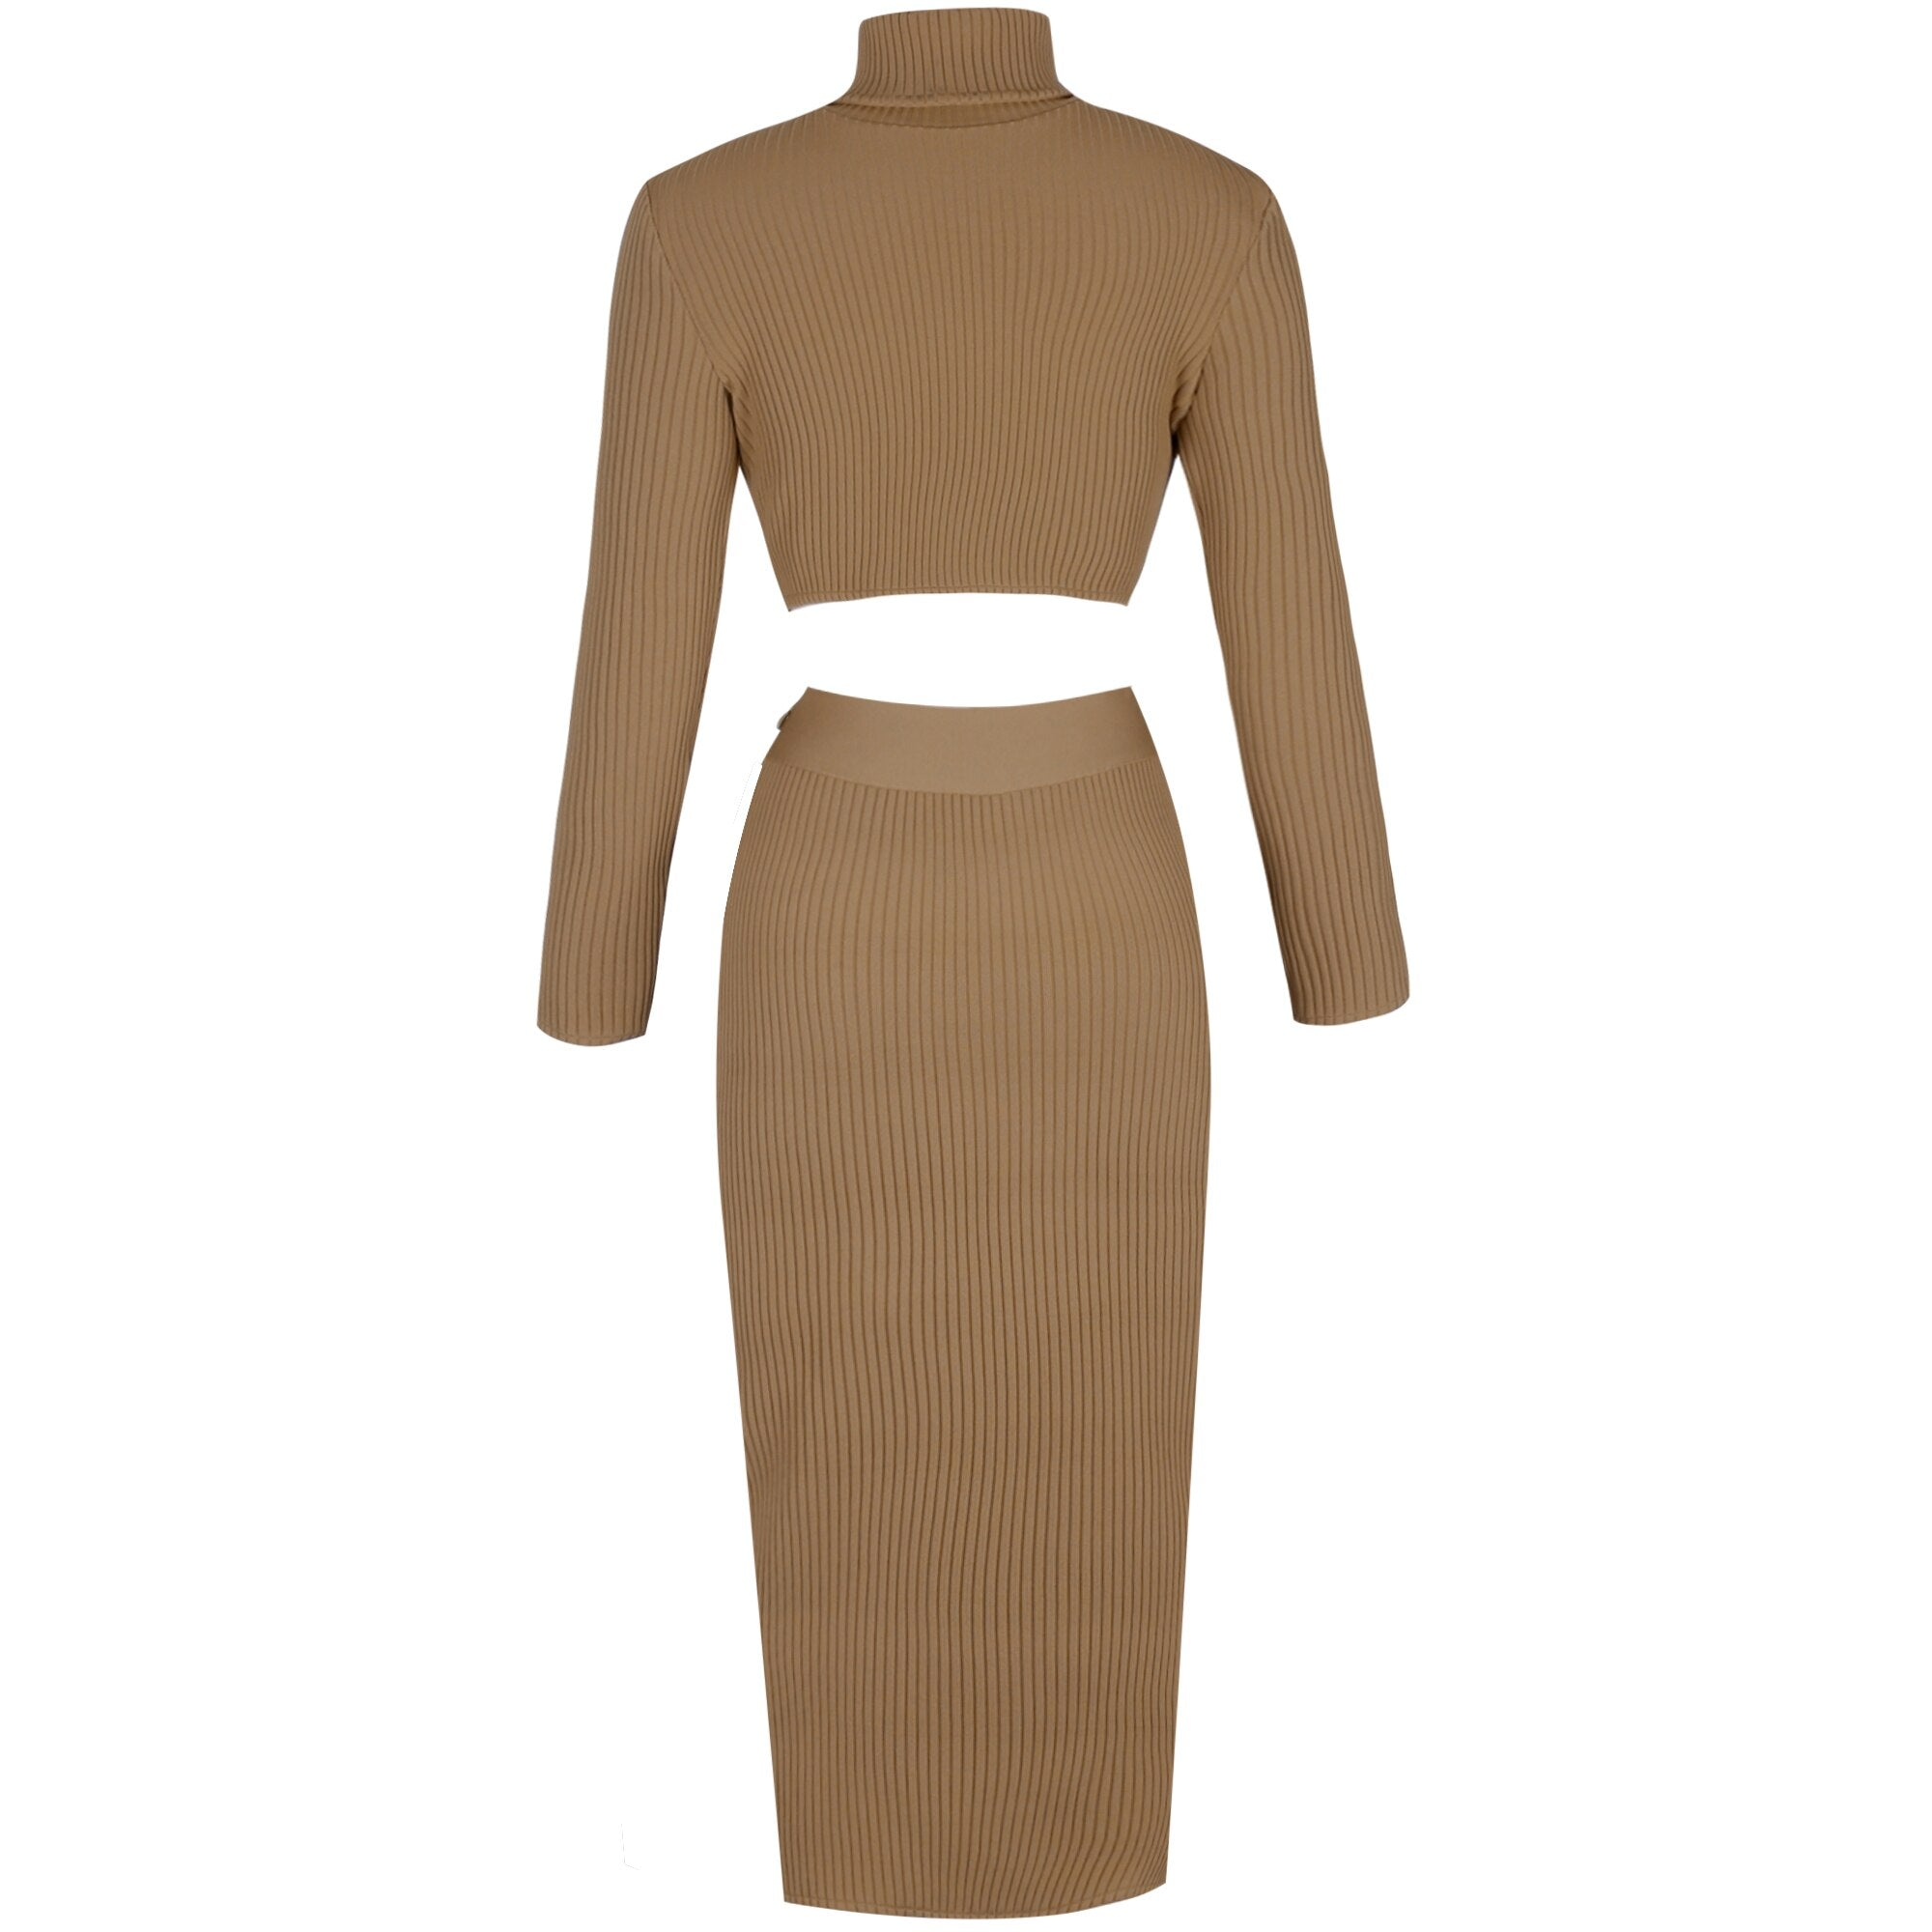 Ribbed Bandage Two Piece Set